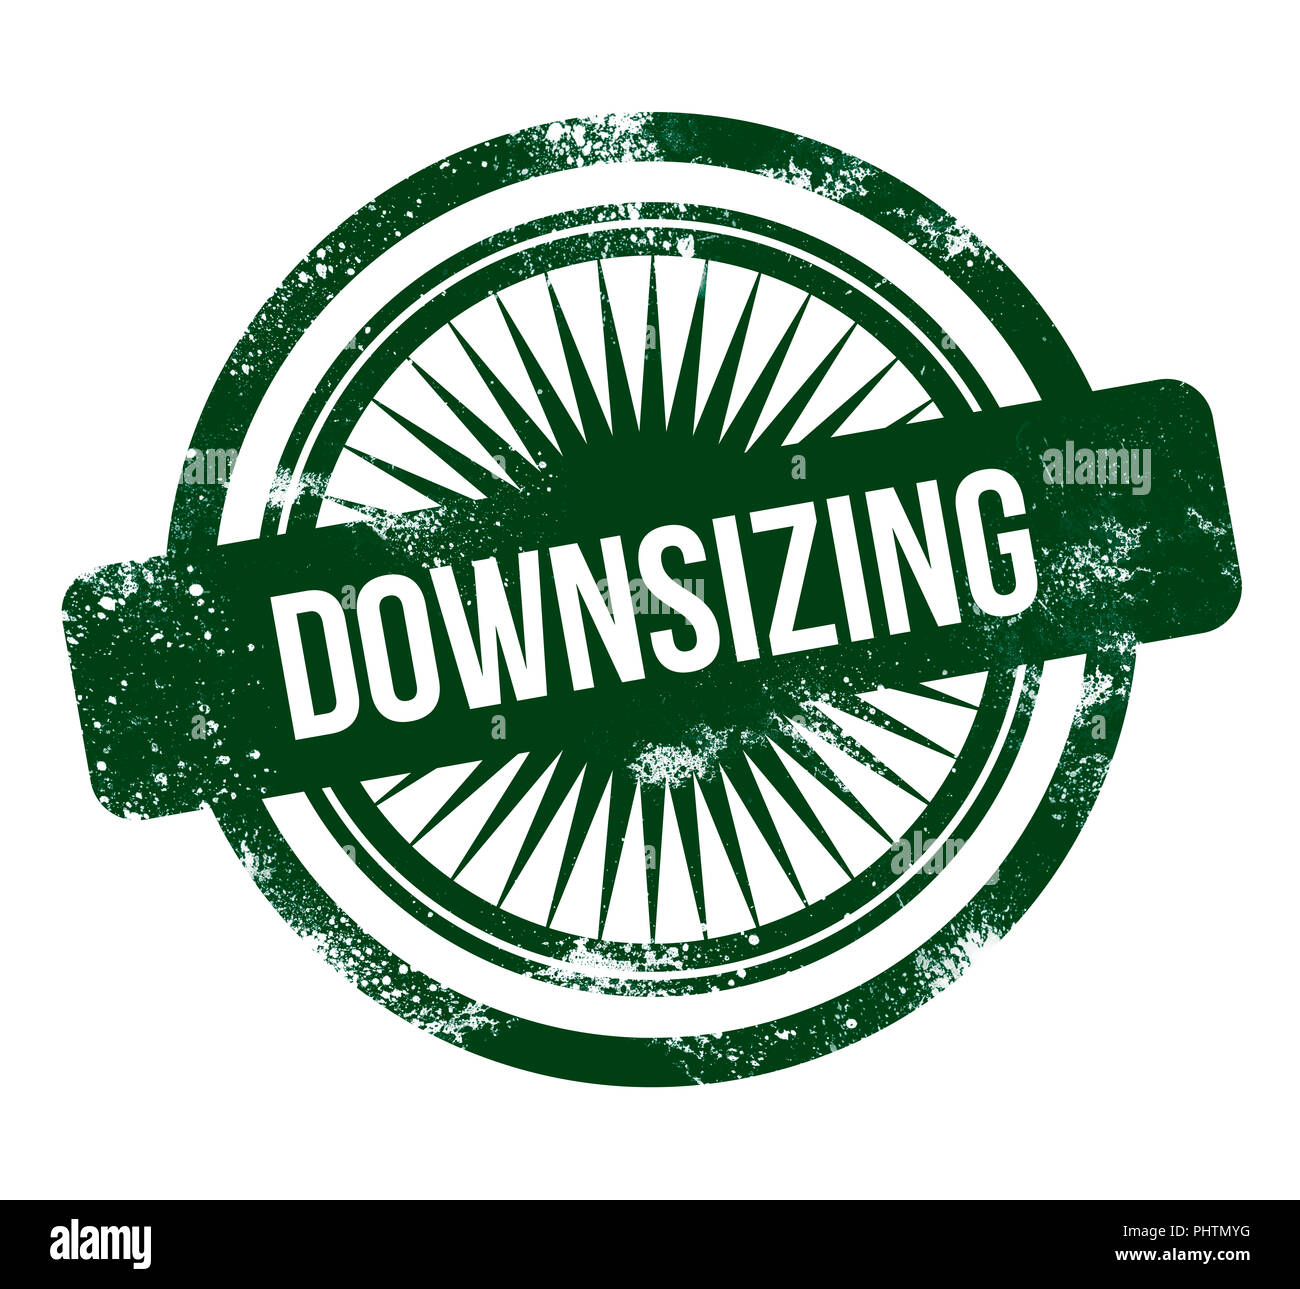 Downsizing - green grunge stamp - Stock Image